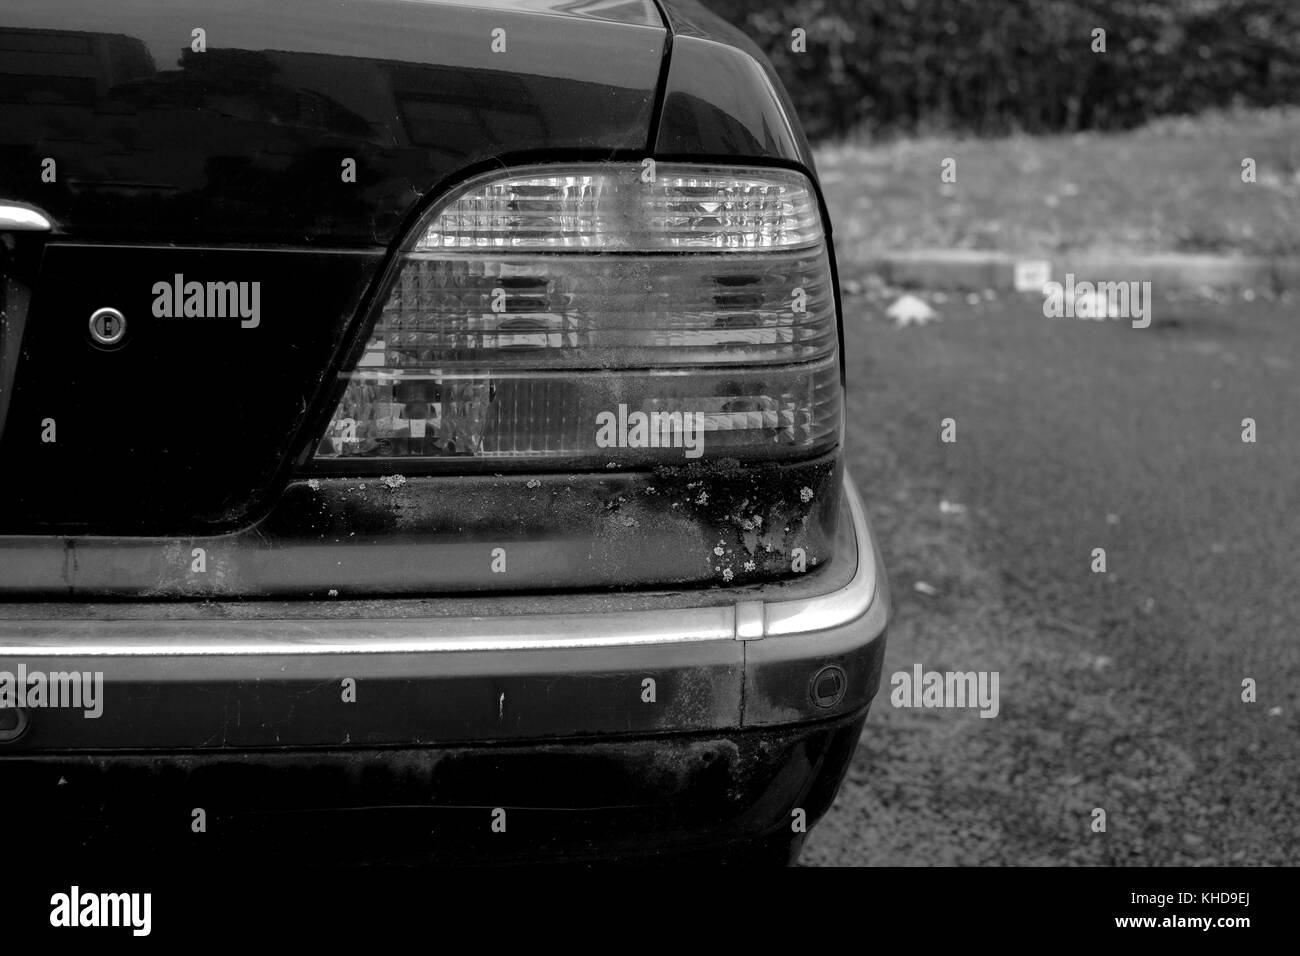 November  - Rear lights of an old BMW saloon 728i - Stock Image